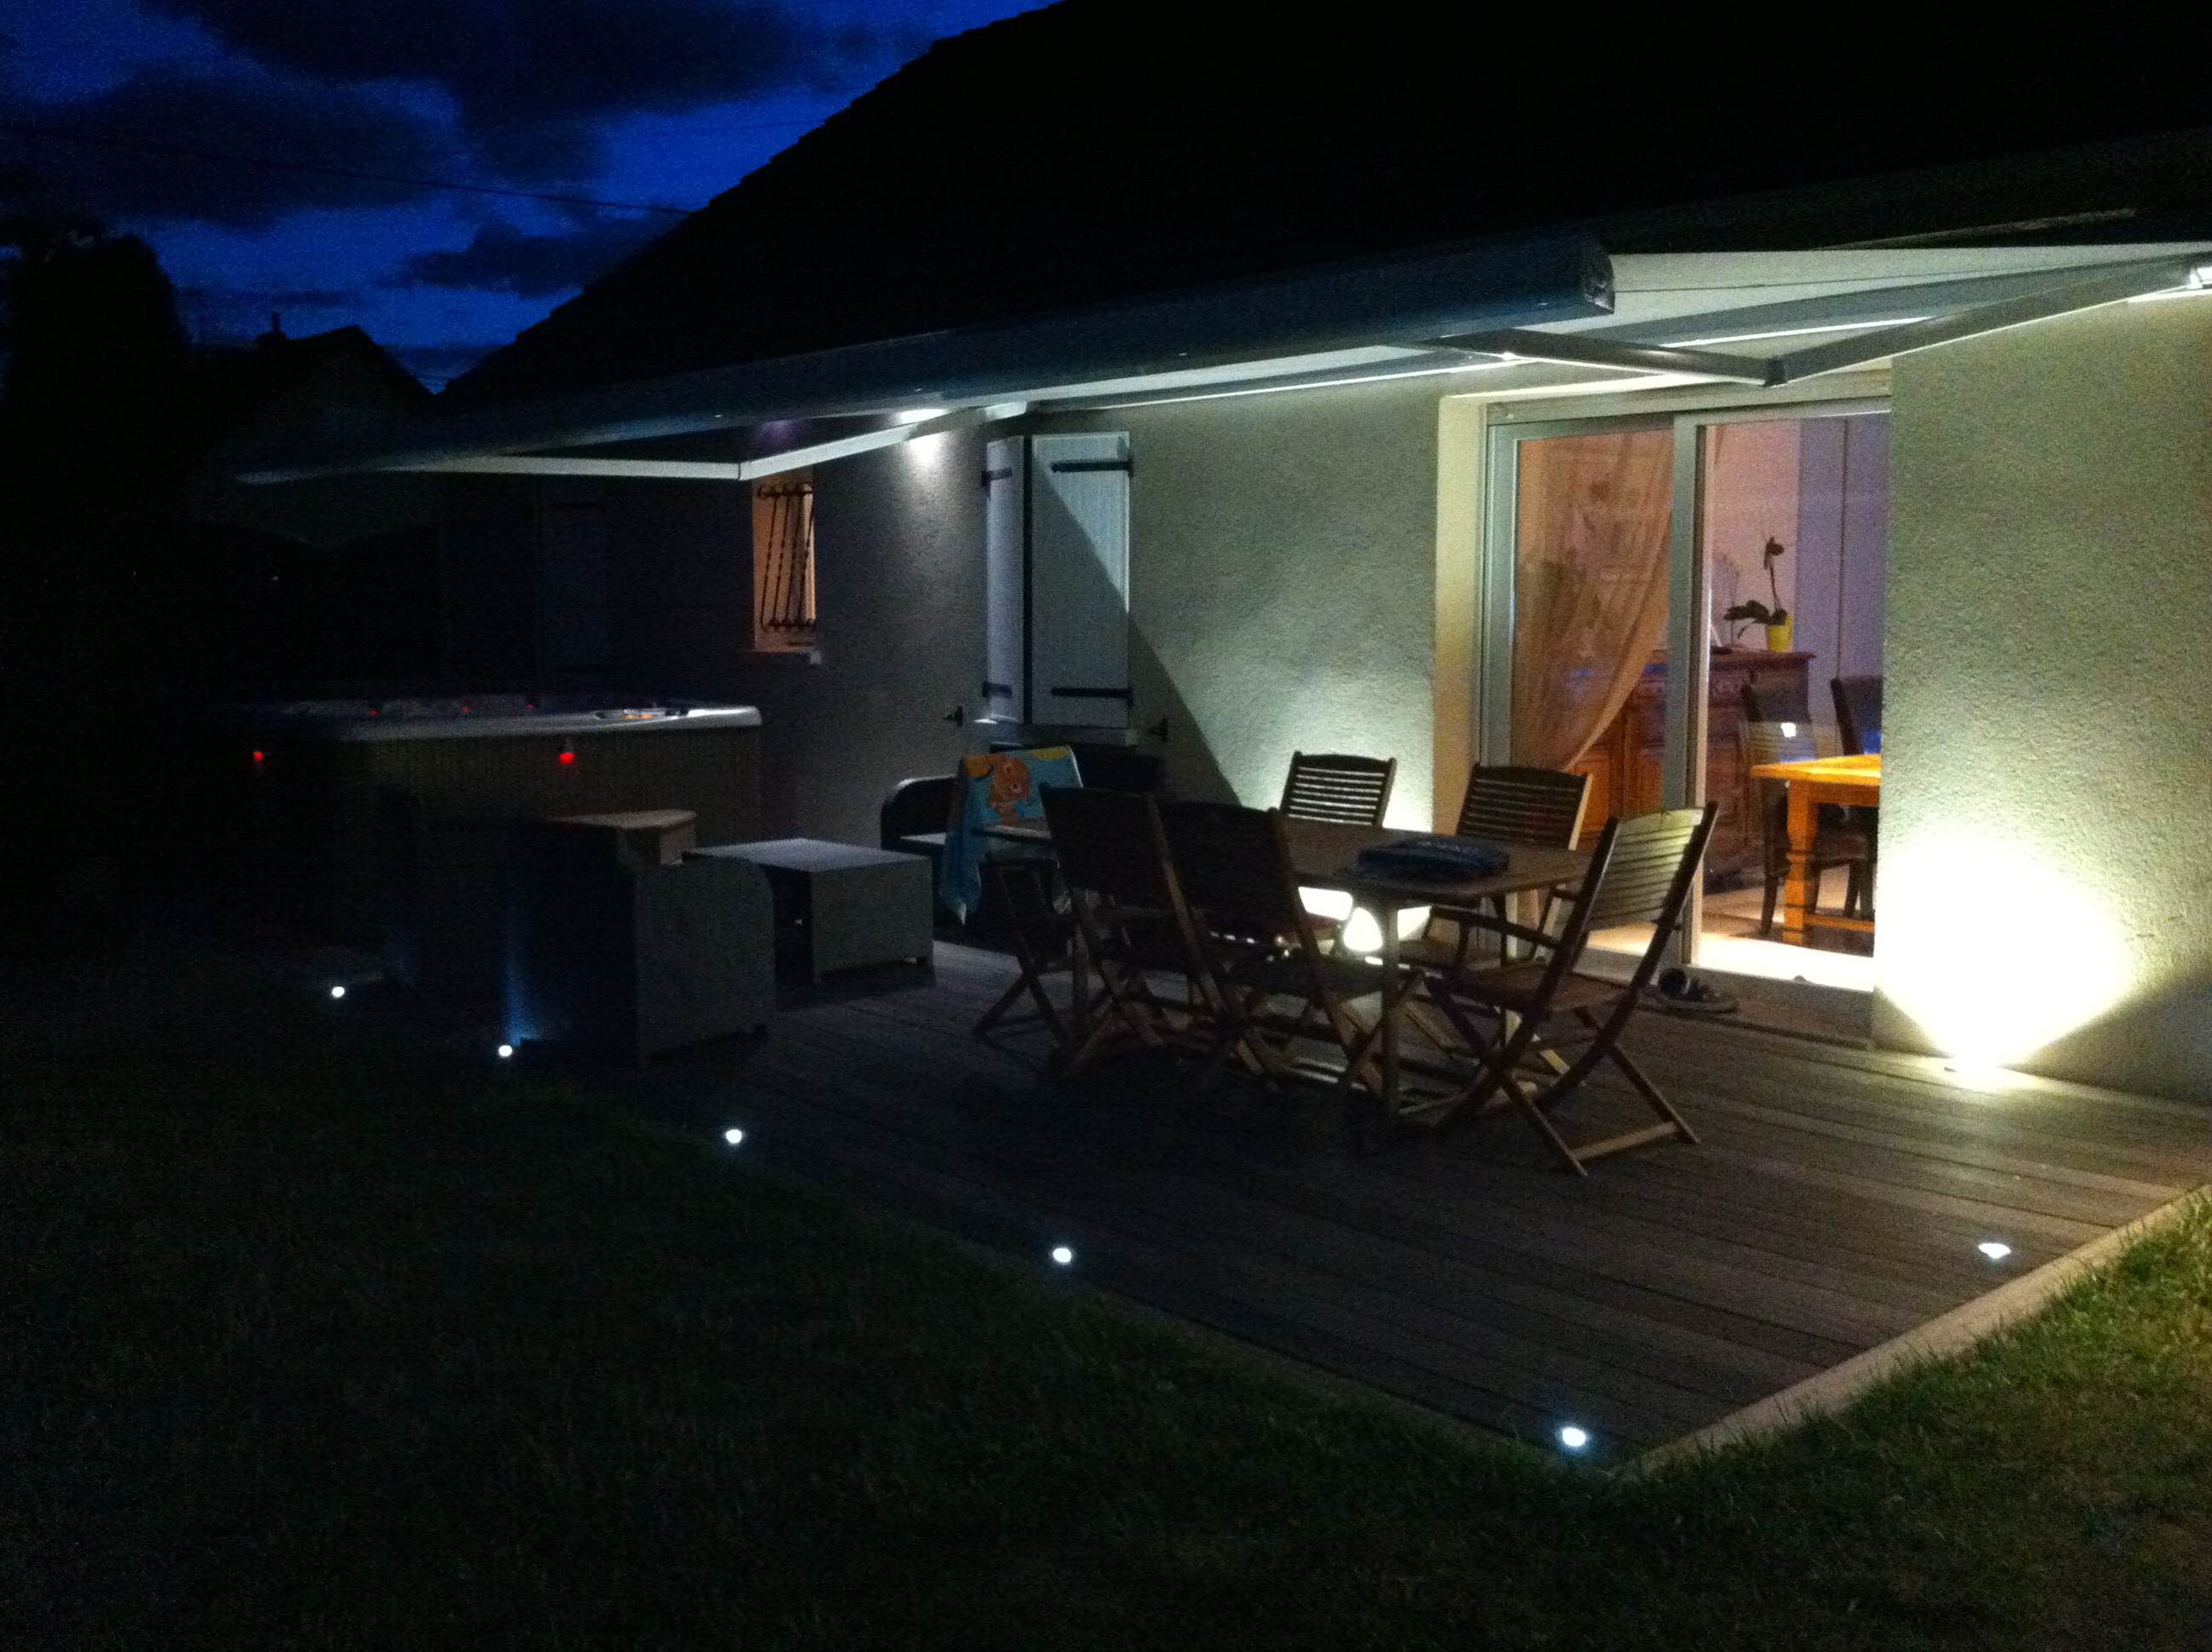 clairage terrasse led eclairage ext rieur On eclairage terrasse exterieur led